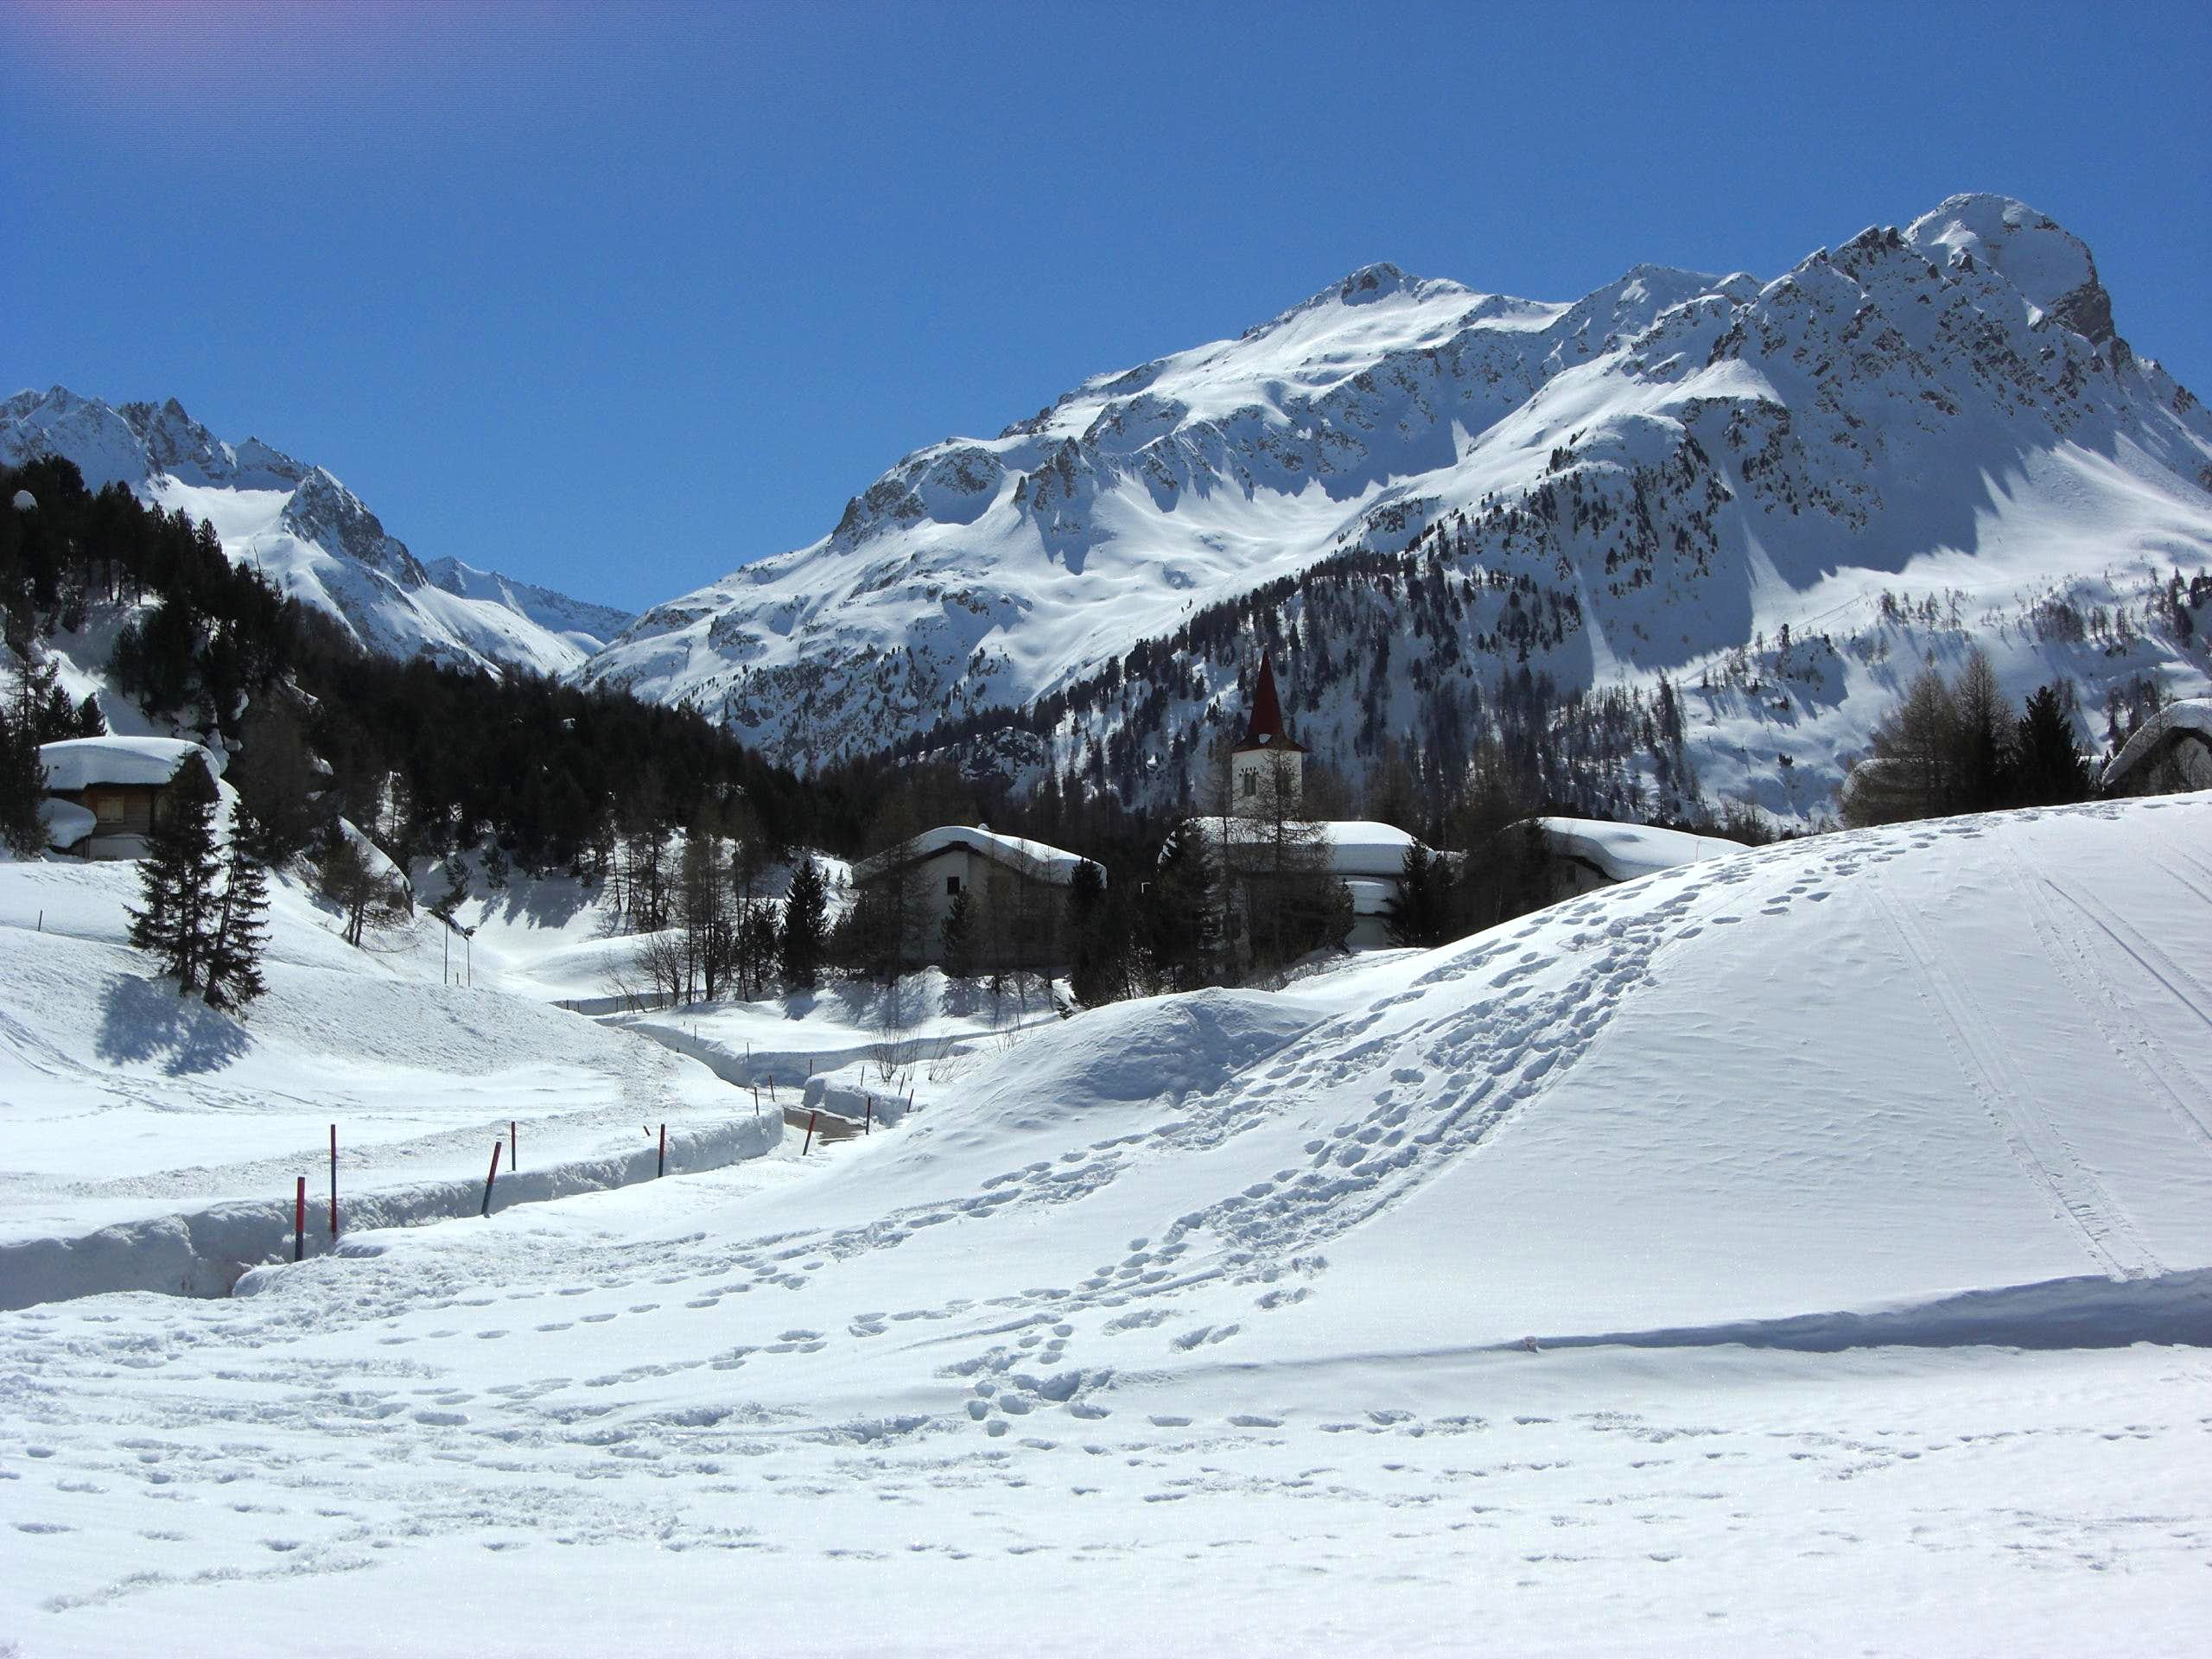 Engadin winter dreams